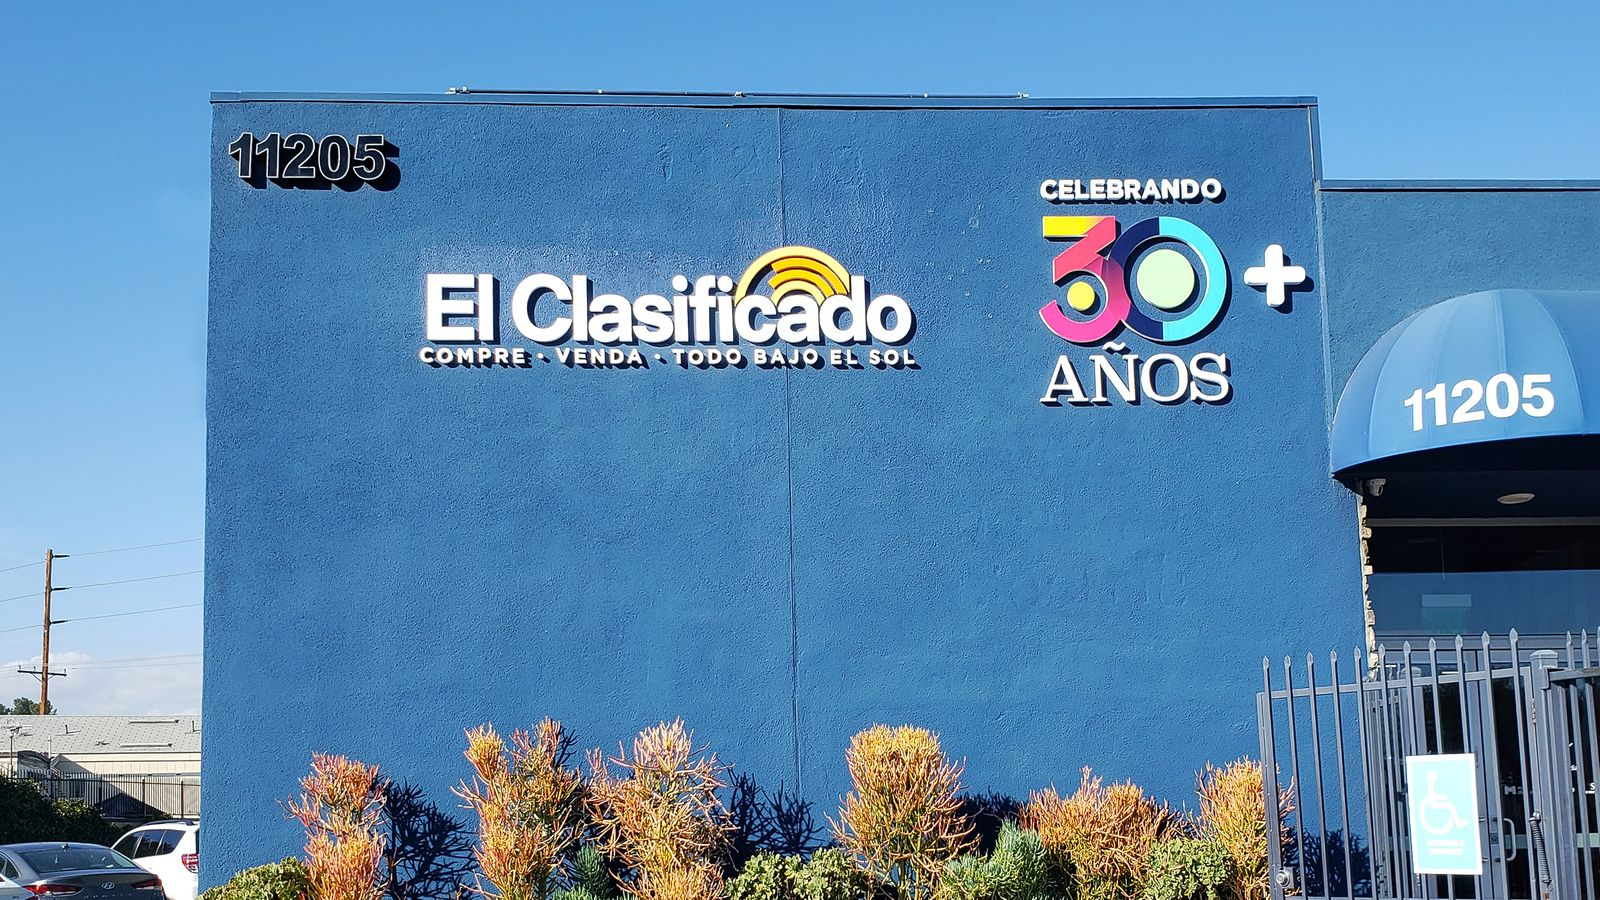 El Clasificado custom 3d sign painted in bright colors with the brand logo, name and address made of PVC for outdoor branding